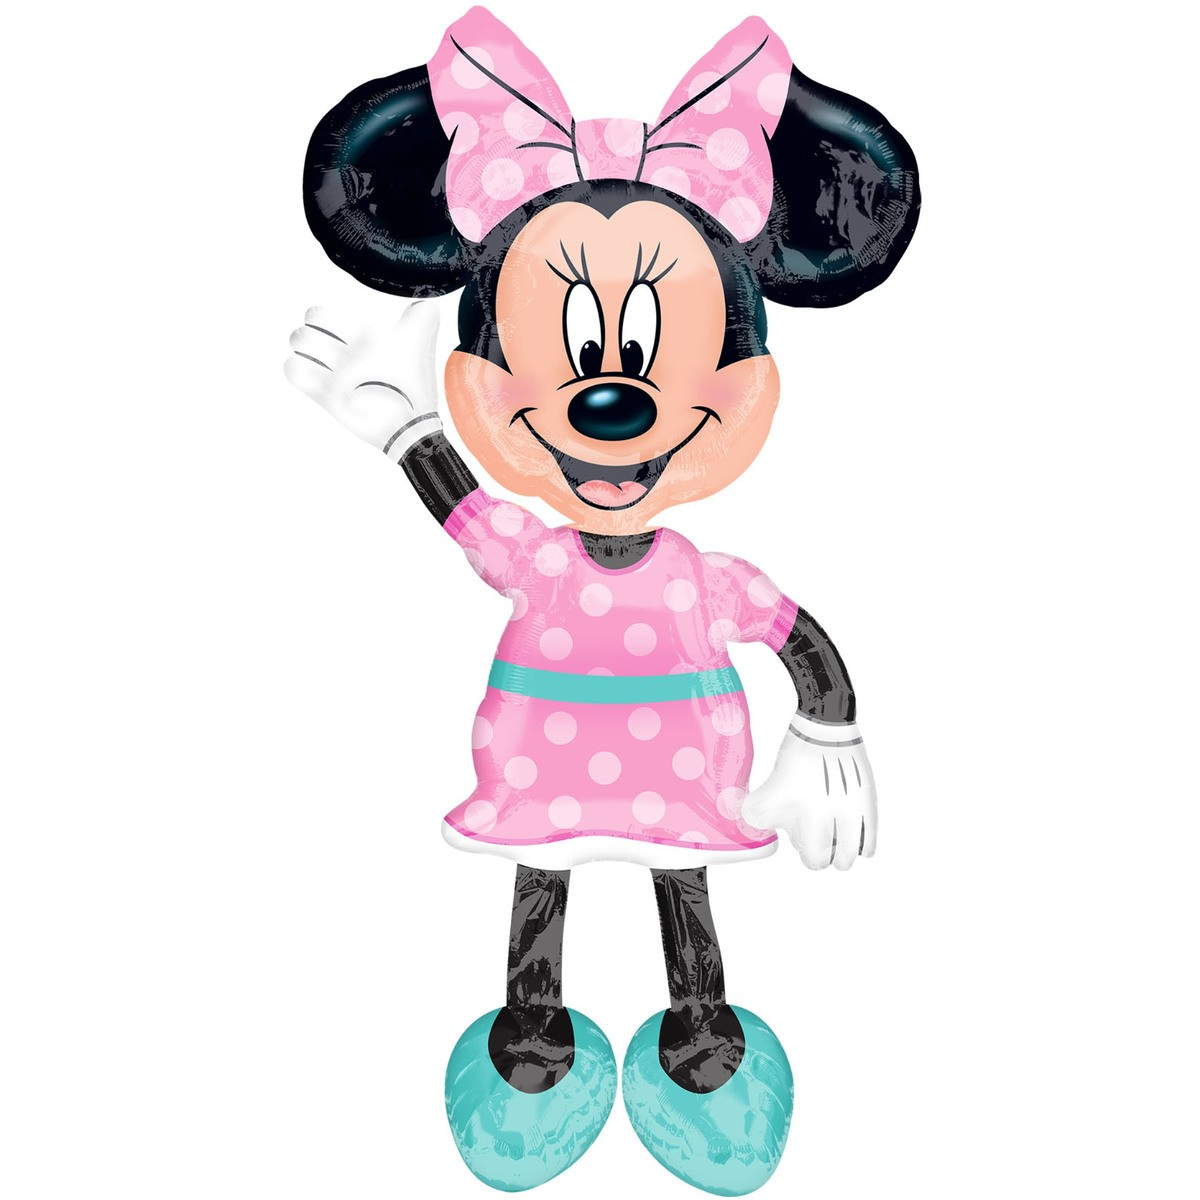 Clipart blue kid socks with minnie mouse png royalty free download Minnie Mouse Air Walker Balloon - Pink png royalty free download